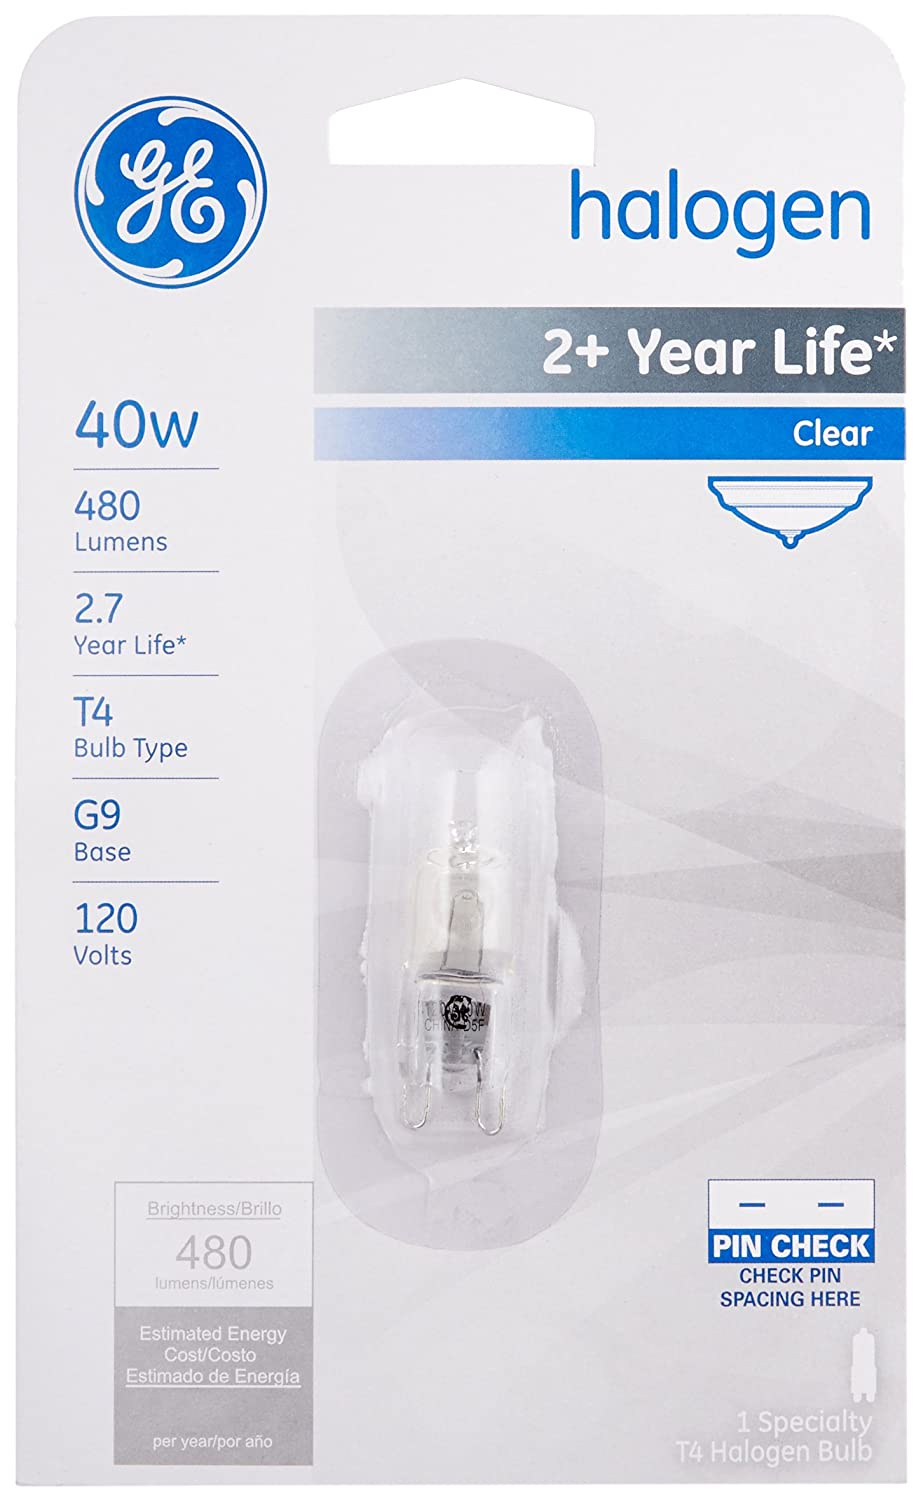 GE Lighting 16755 40-Watt Halogen Low Voltage Lighting G9 Light Bulb, 1-Pack - - Amazon.com